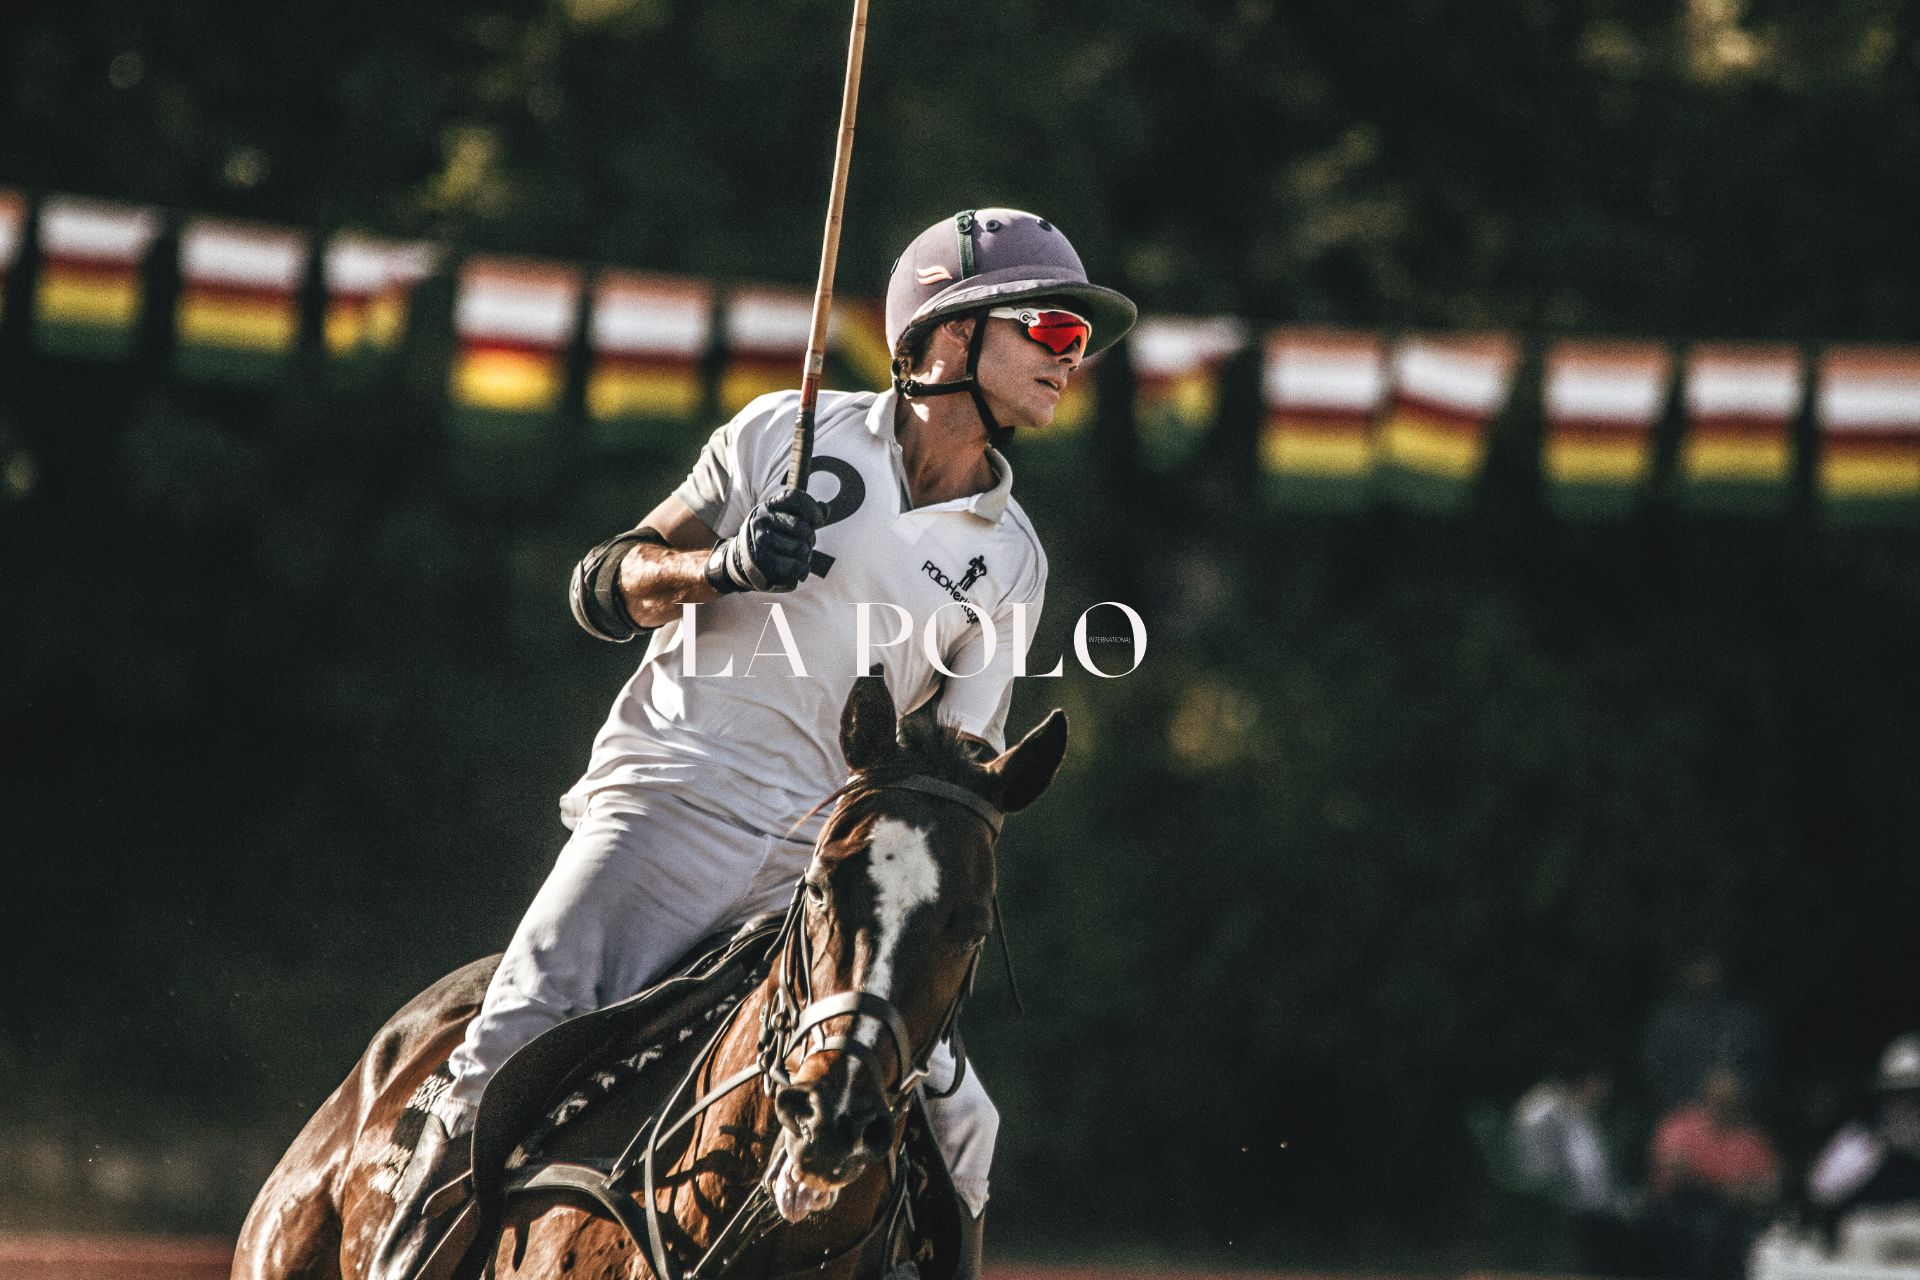 """Polo Is Family, Lifestyle and Dedication""~ Emilio Urrea Kirby"